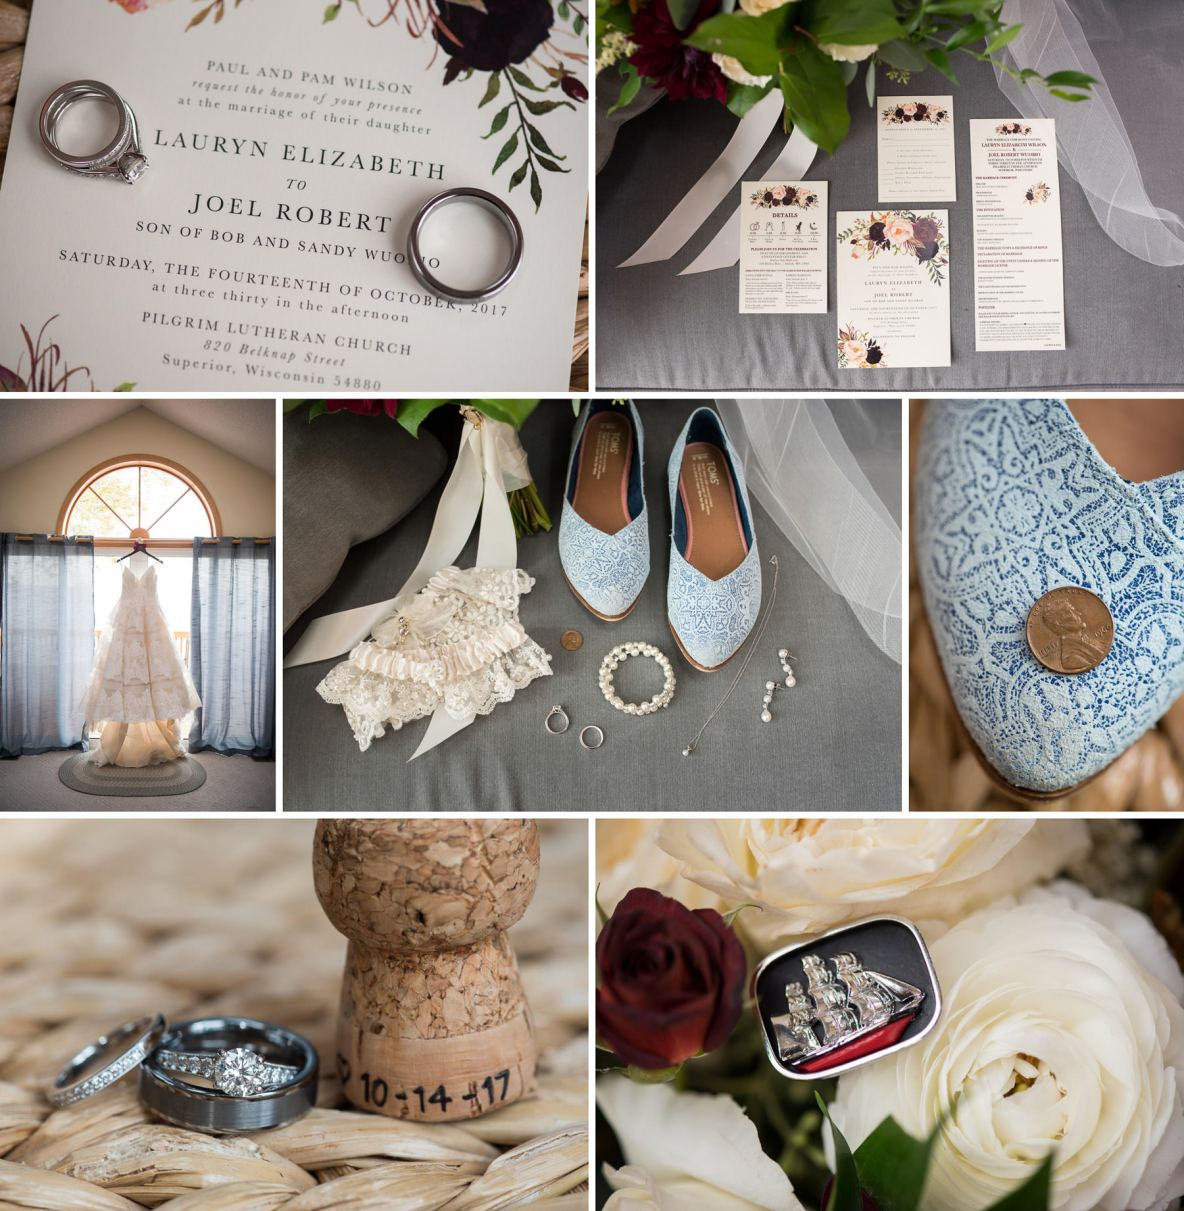 Photos of details of the wedding day, including shots of the rings, shoes, dress and more.